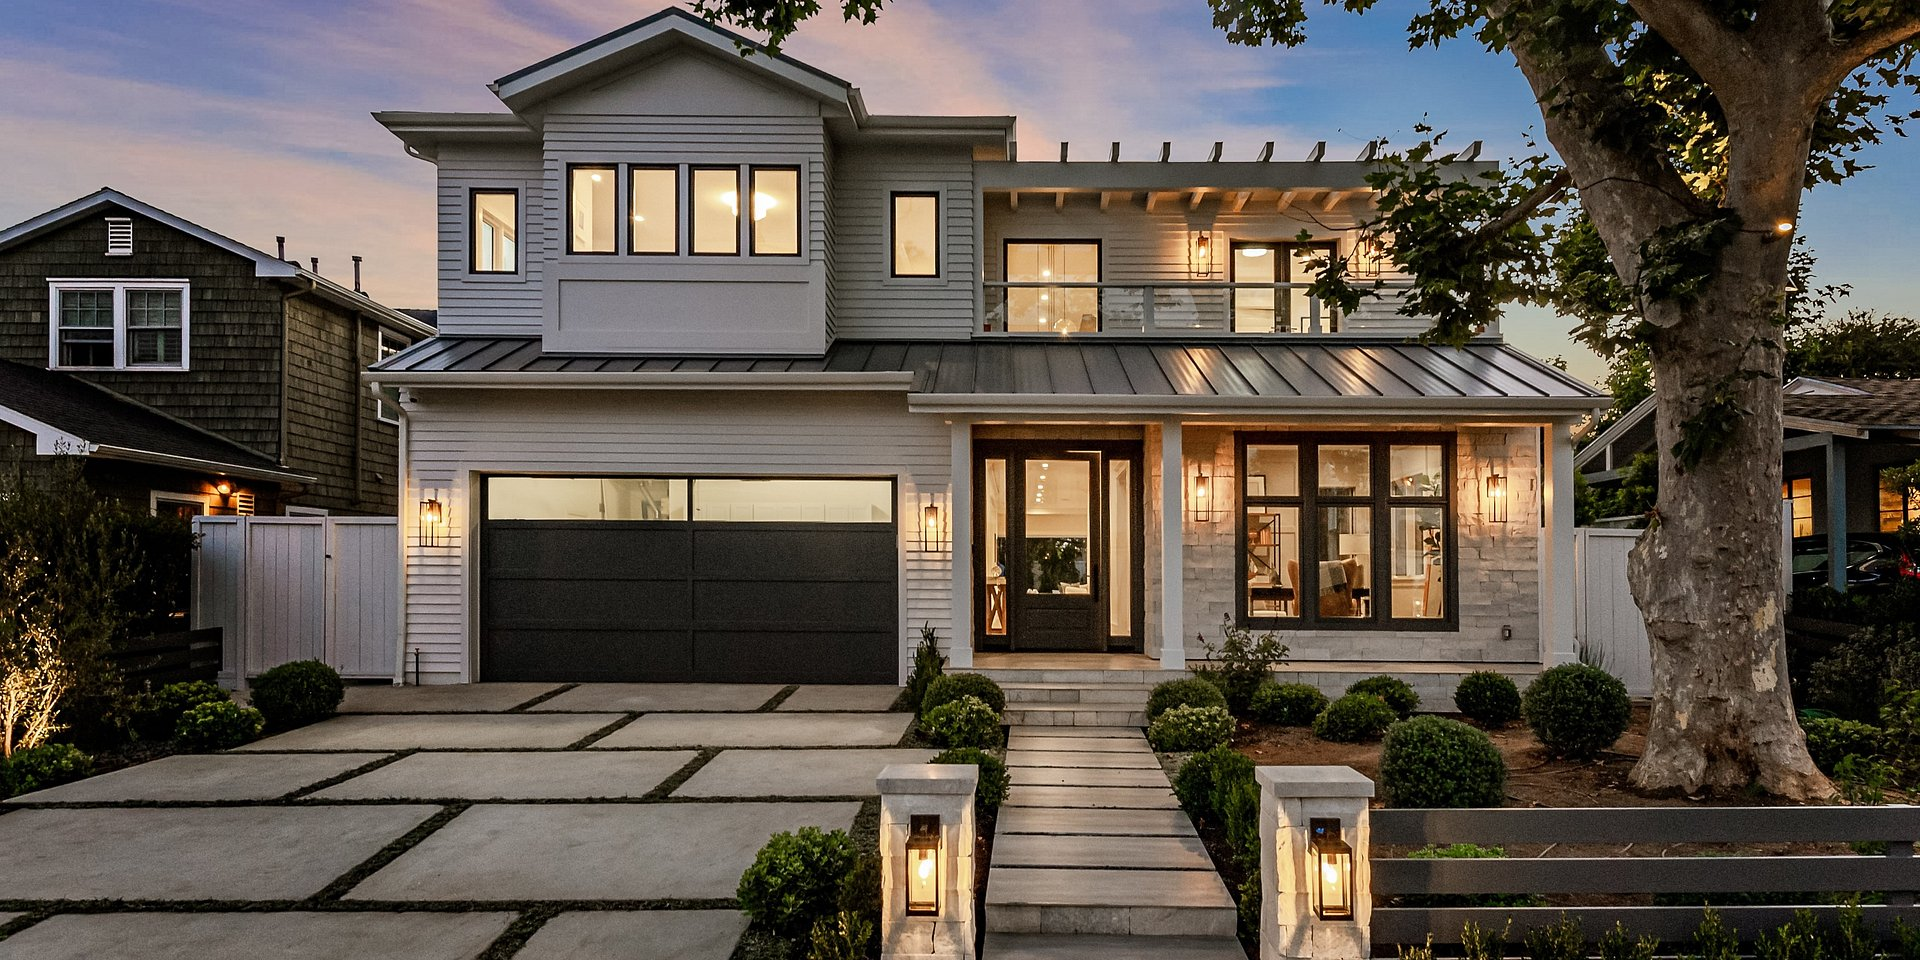 Coldwell Banker Residential Brokerage Lists Pacific Palisades Property for $7.195 Million